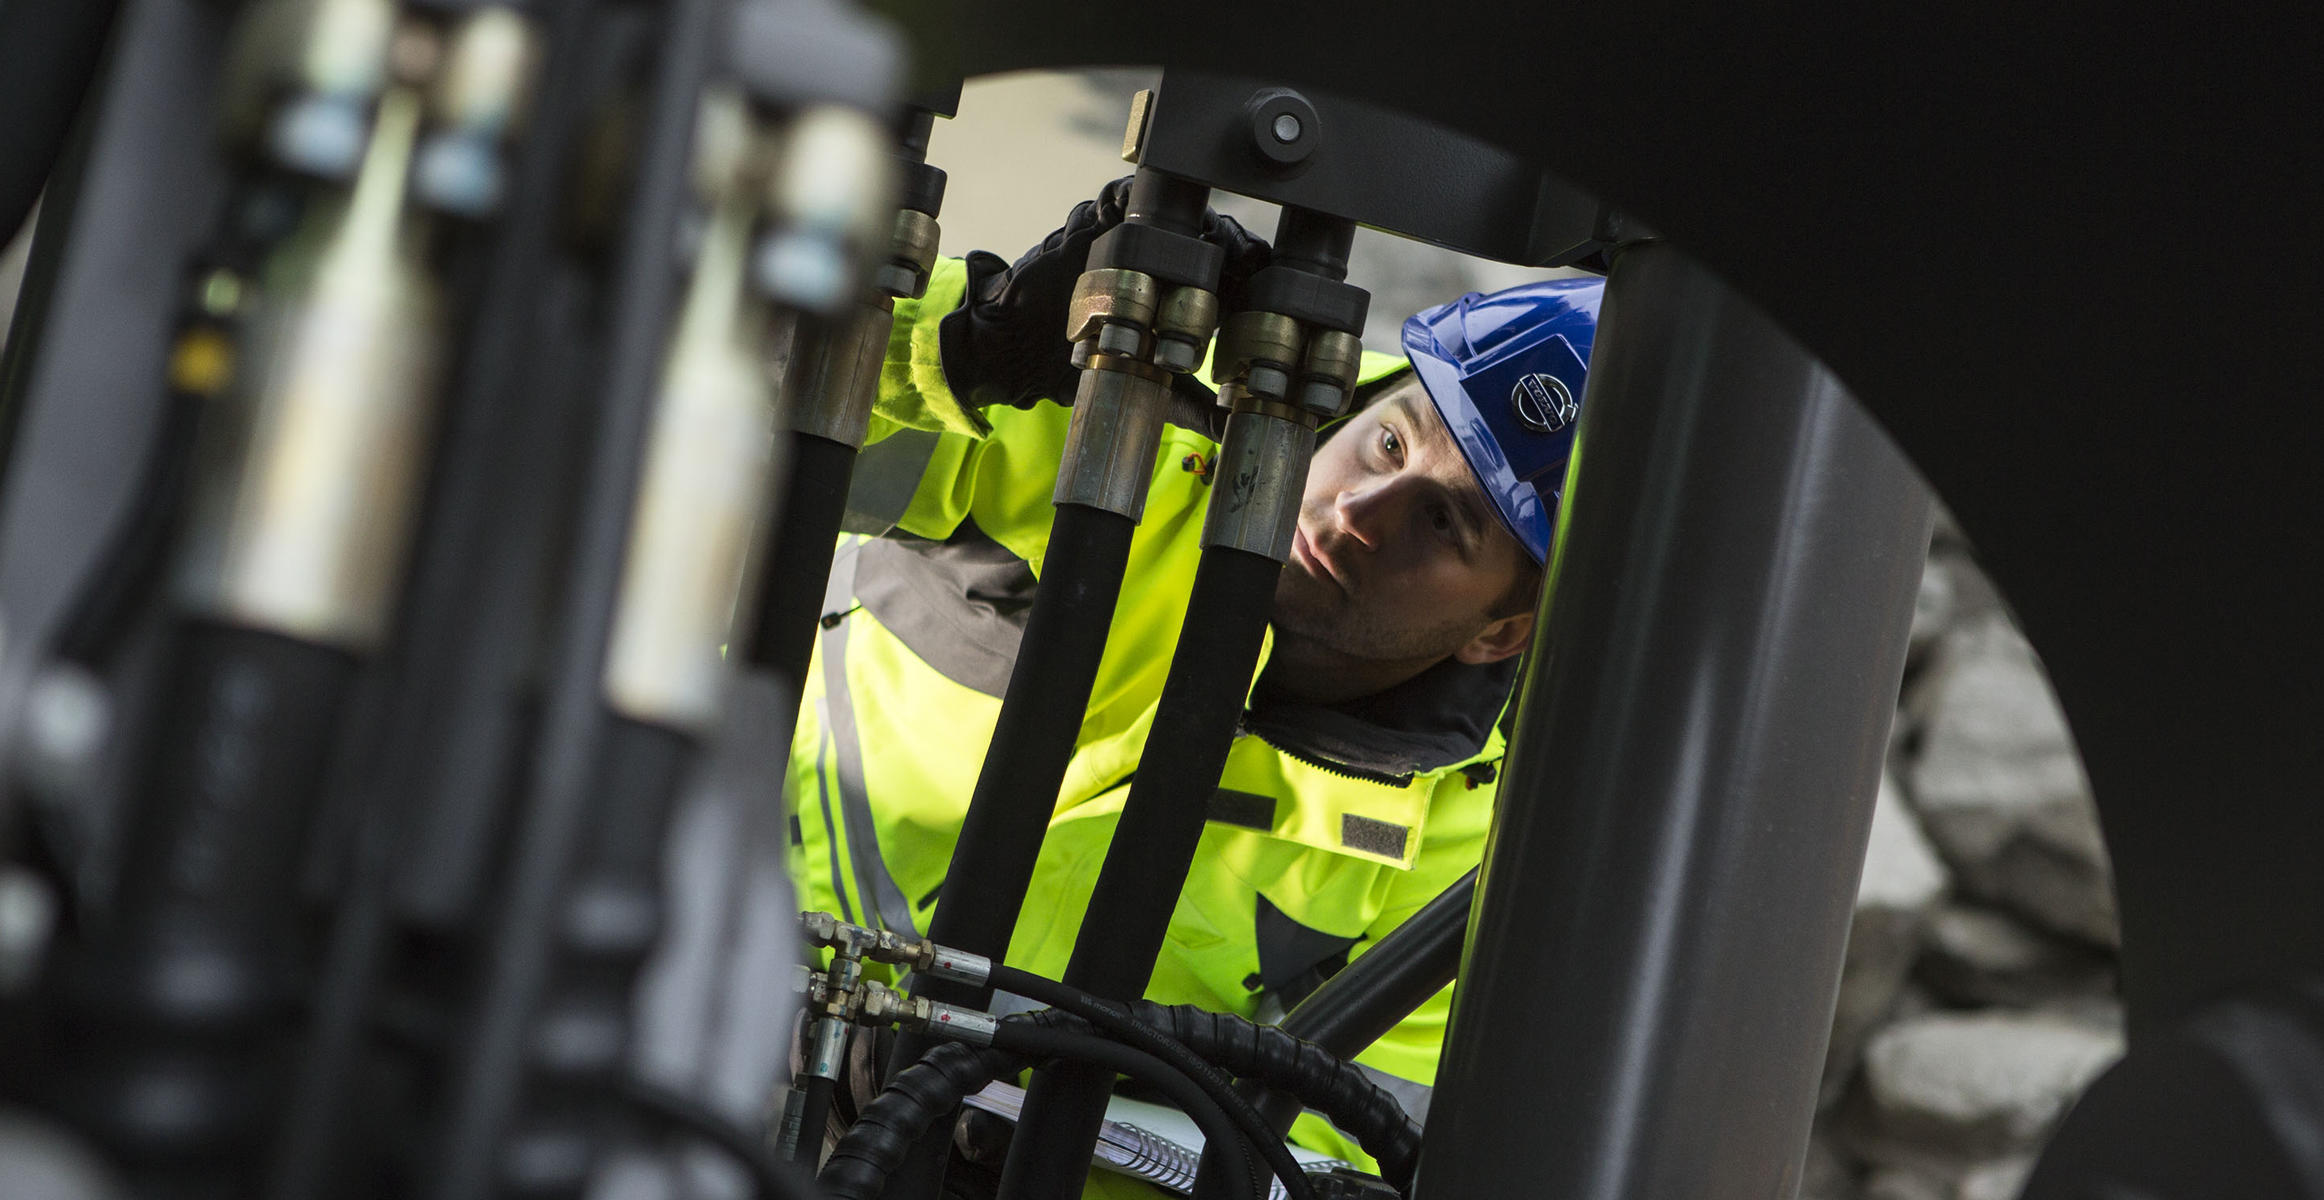 Carry out daily maintenance inspections